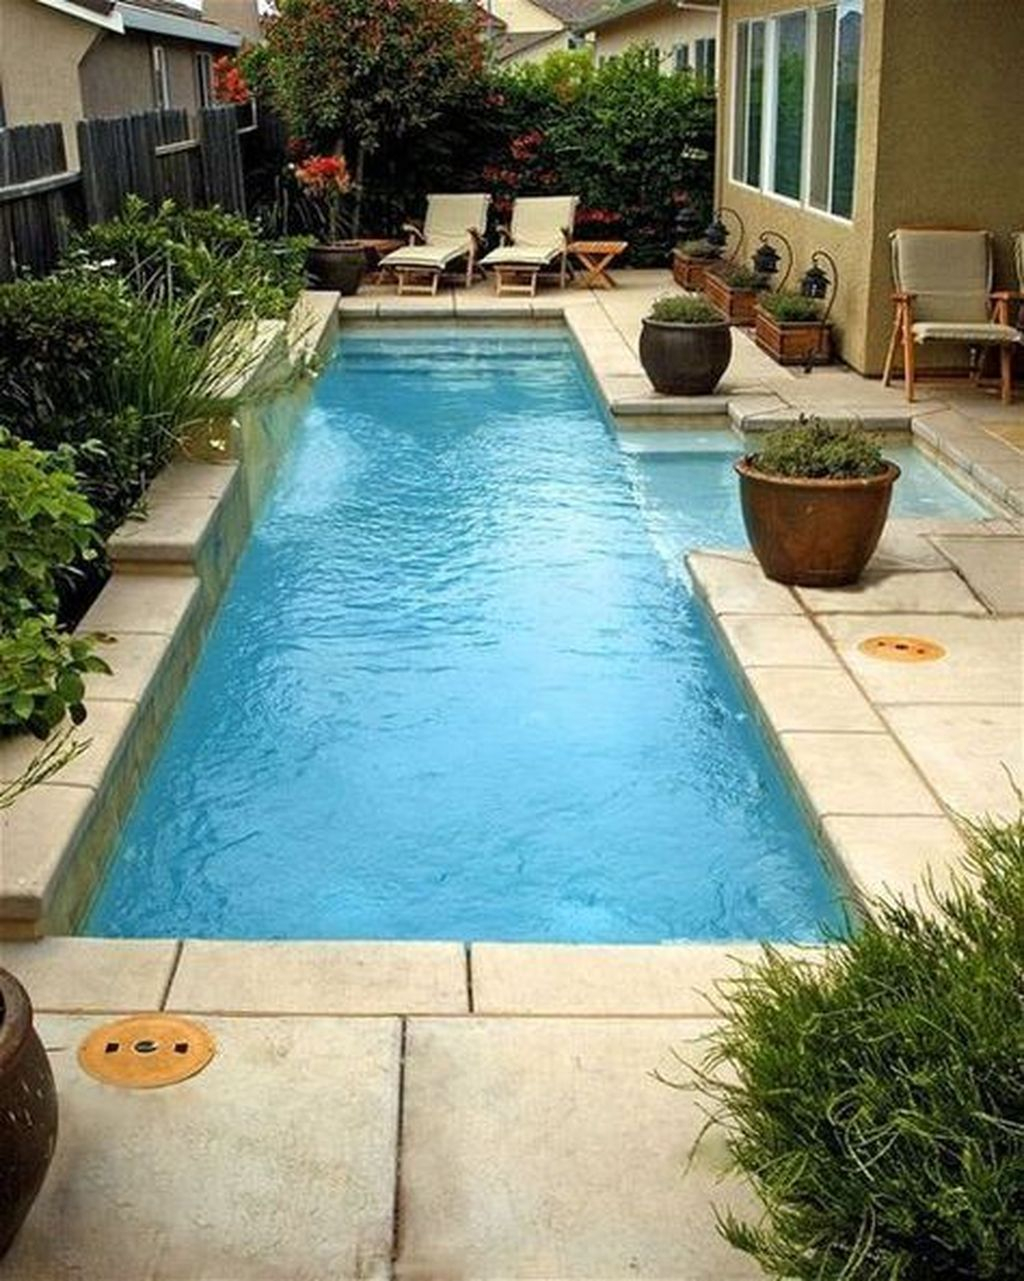 42 Awesome Swimming Pool Design Ideas For Backyard Swimming Pools throughout Small Backyard Pool Ideas